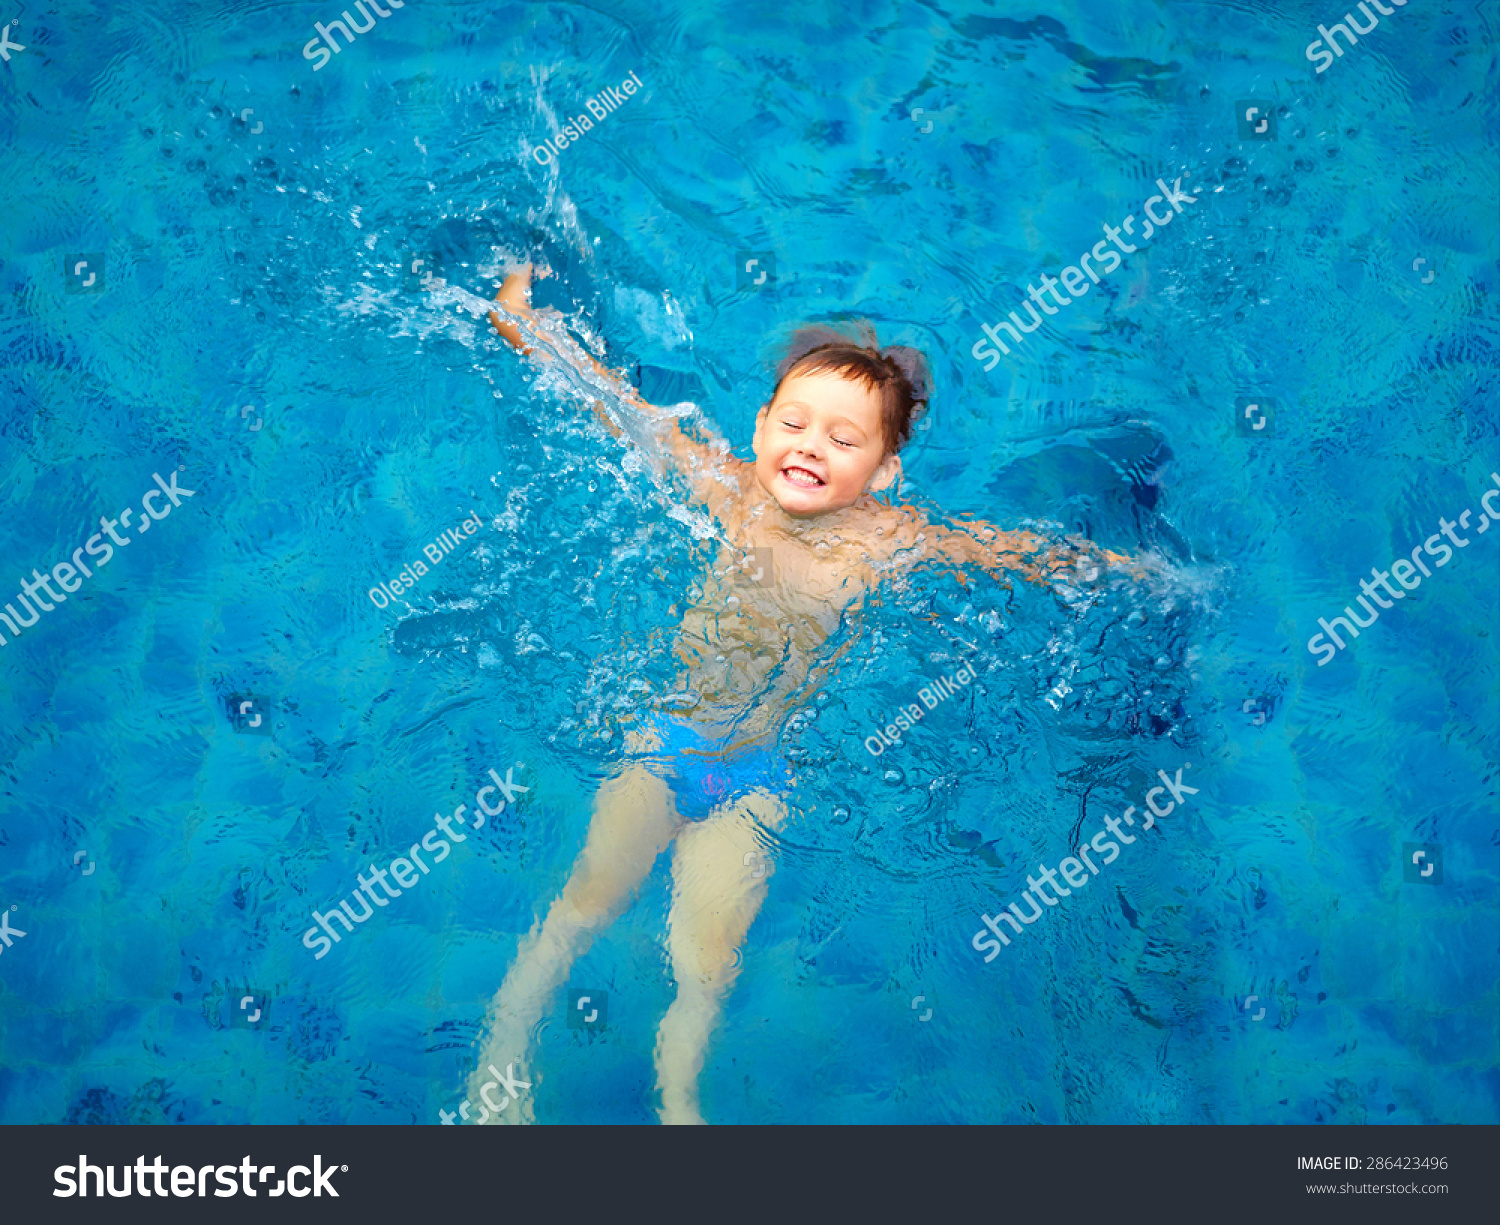 Cute Kid, Boy Swimming In Pool Water, Top View Stock Photo ...